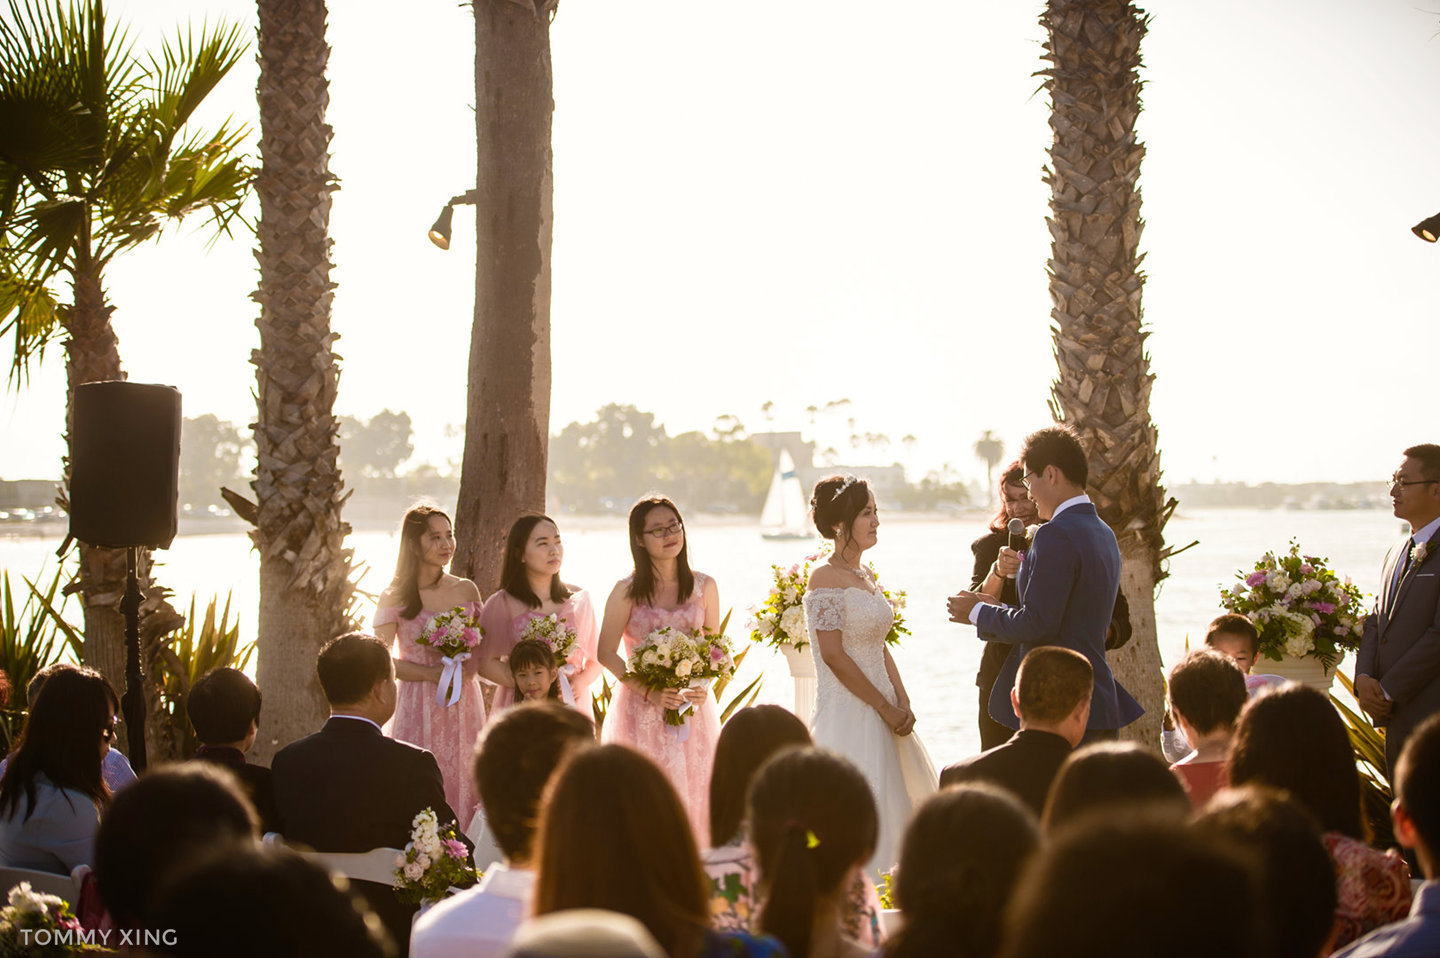 Paradise Point Resort Wedding Xiaolu & Bin San Diego 圣地亚哥婚礼摄影跟拍 Tommy Xing Photography 洛杉矶婚礼婚纱照摄影师 139.jpg